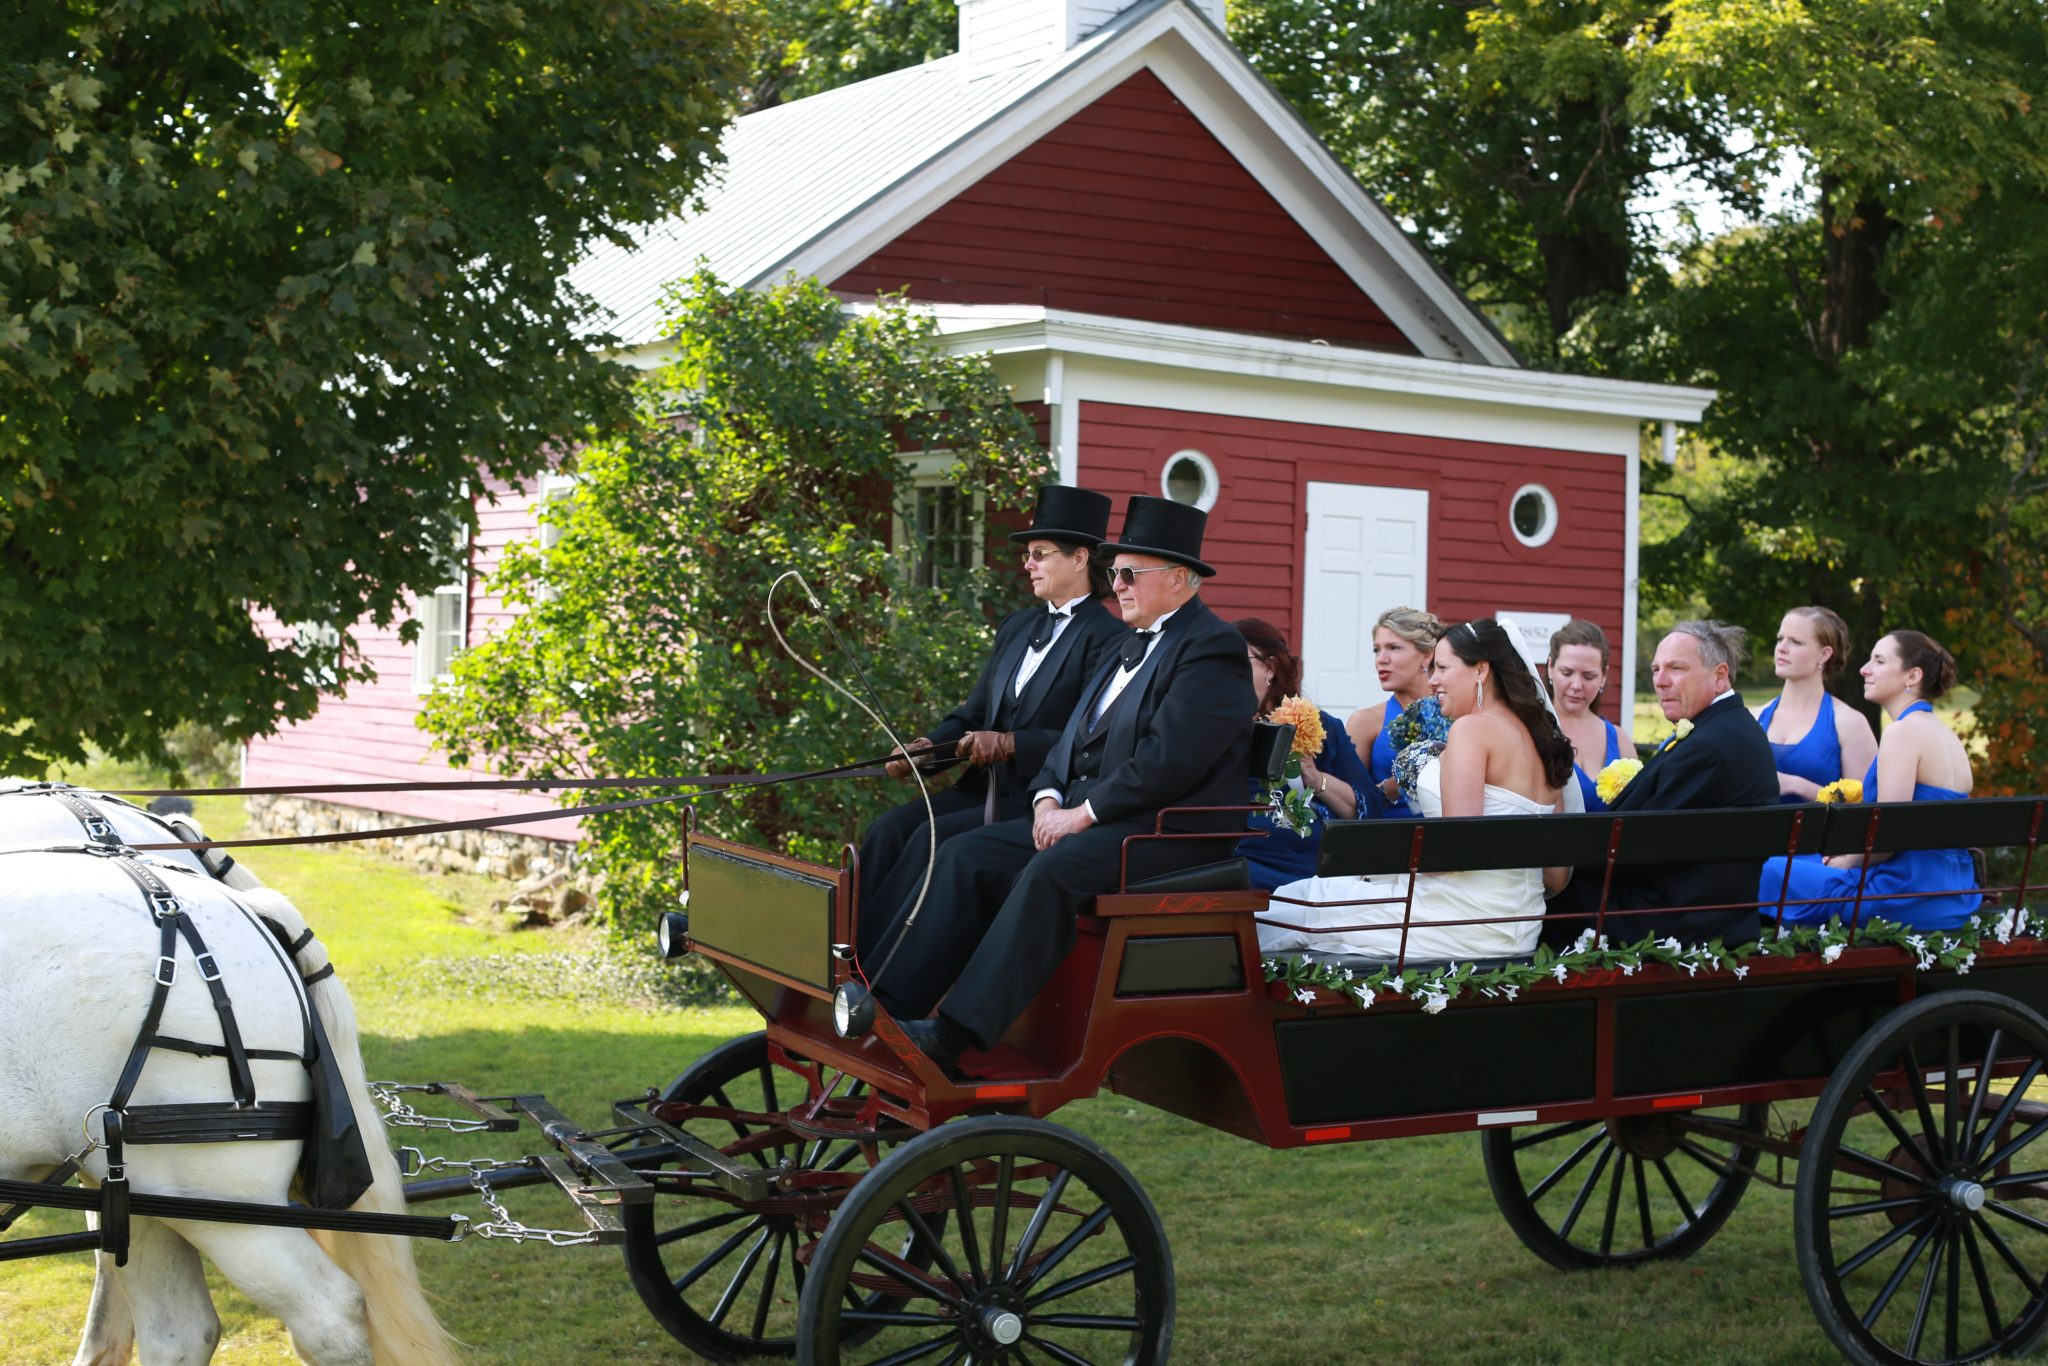 Passing the schoolhouse in horse-drawn carriage at OA